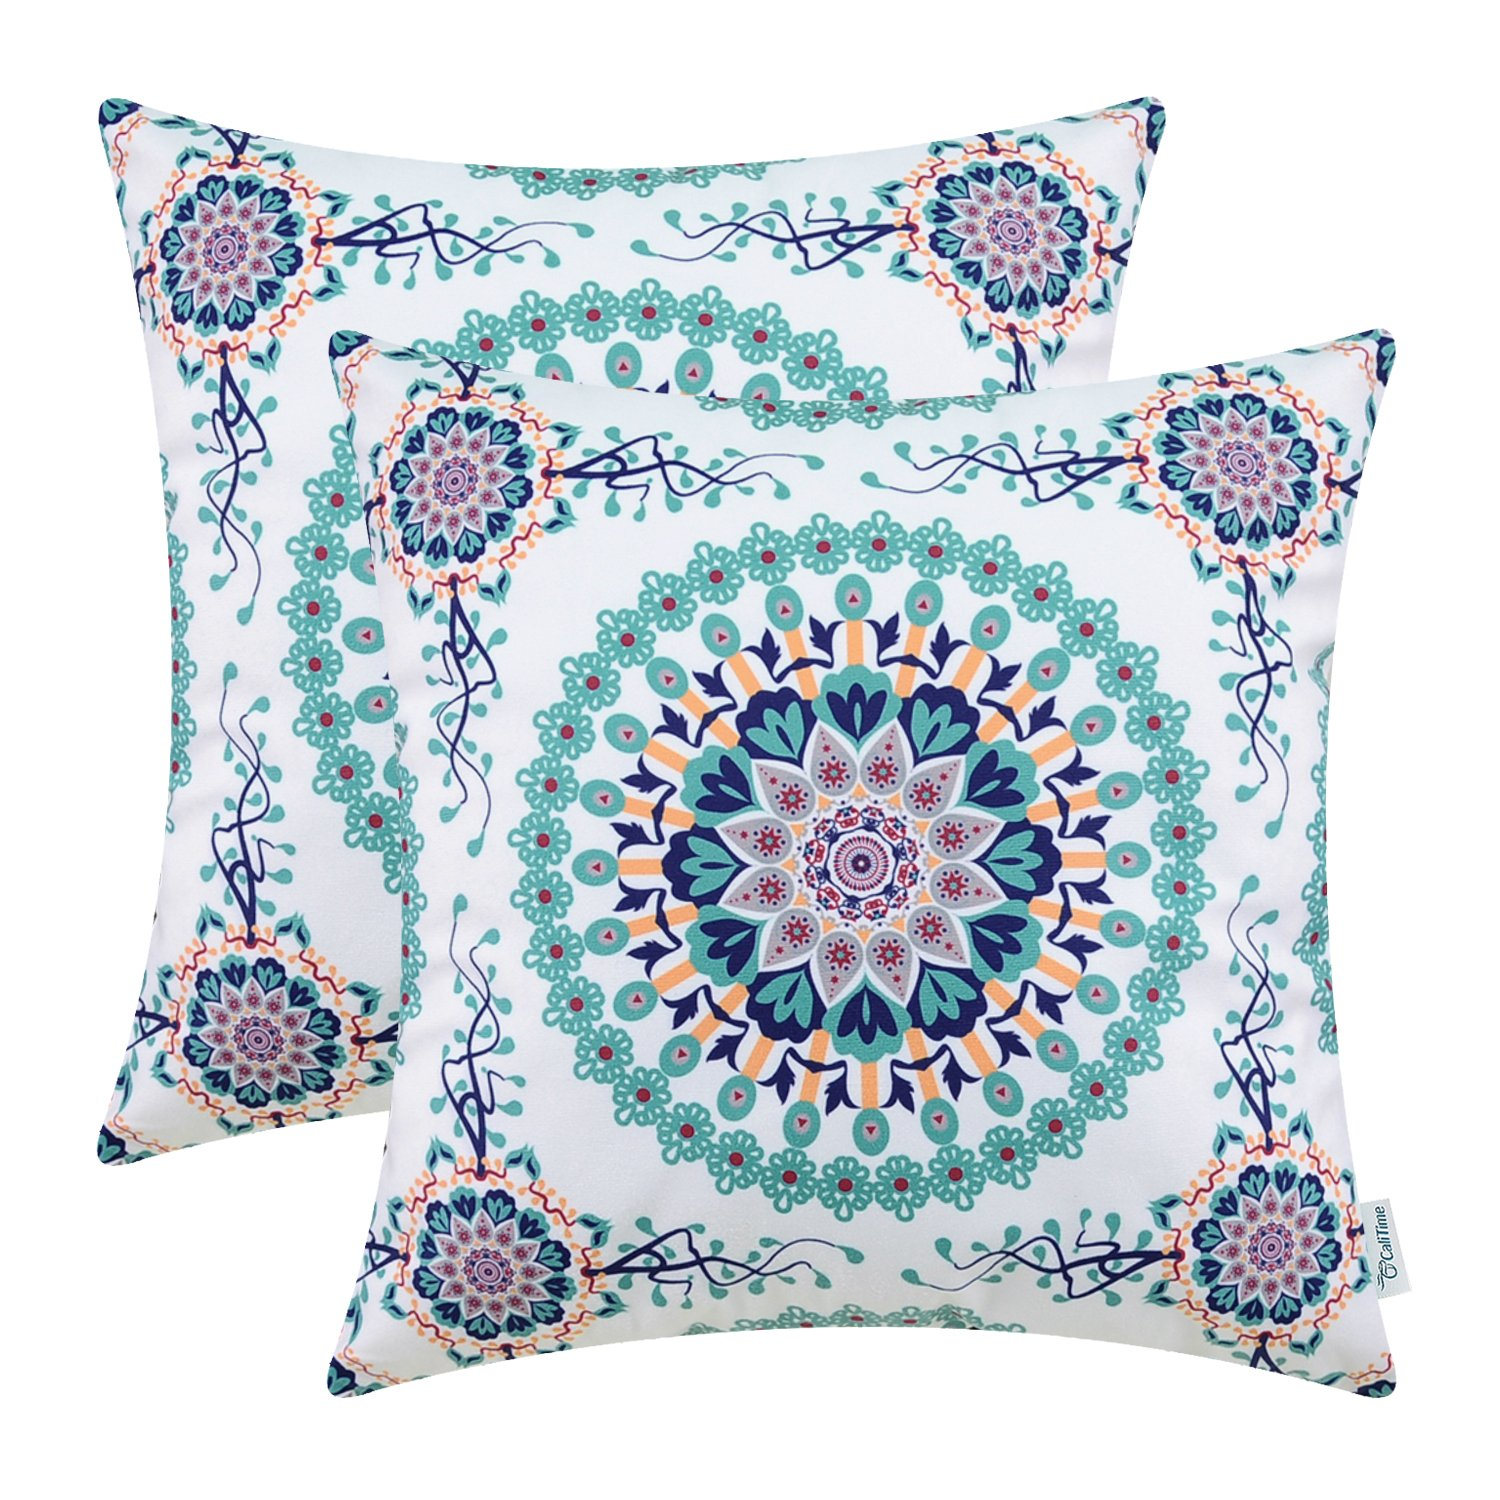 CaliTime Pack of 2 Cozy Fleece Throw Pillow Cases Covers for Couch Bed Sofa Fantasy Compass Floral Print 18 X 18 Inches Main Teal